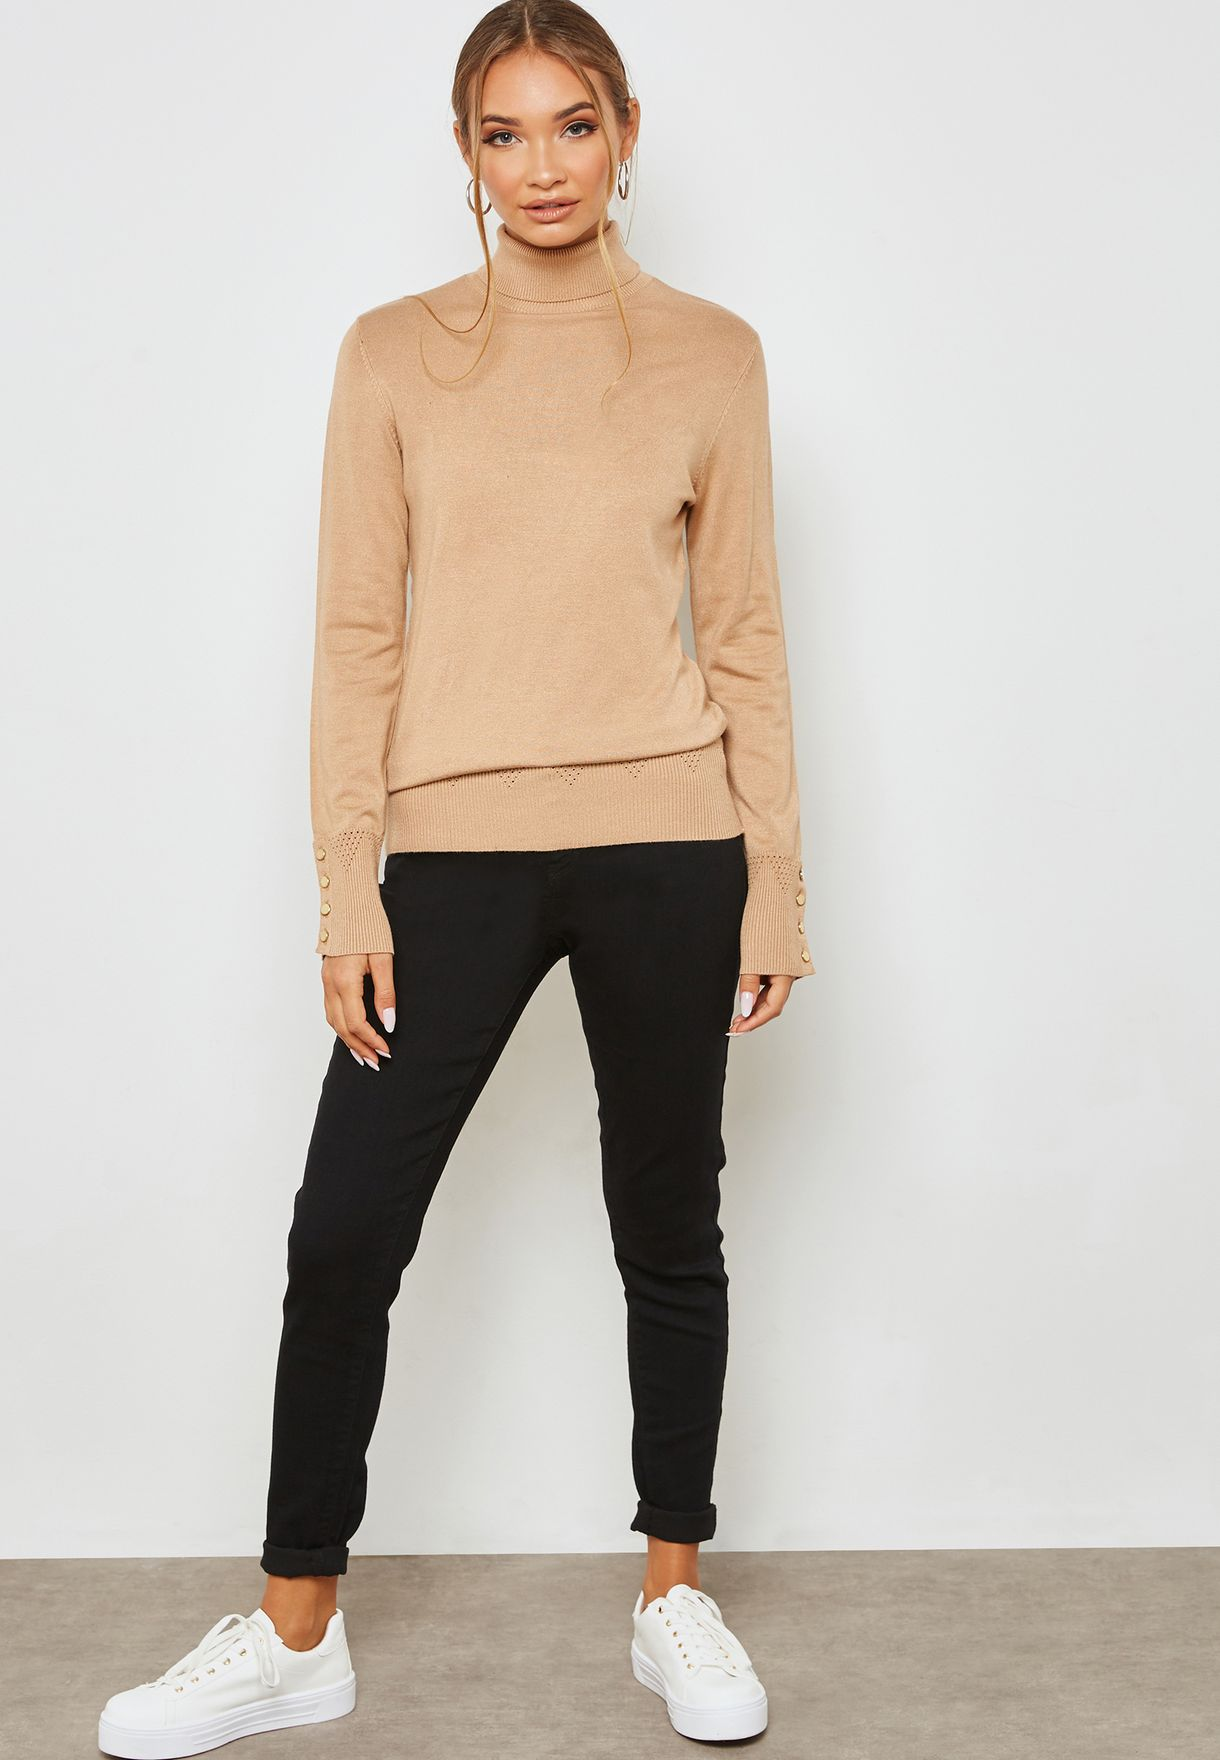 Roll Neck Sleeve Button Detail Sweater